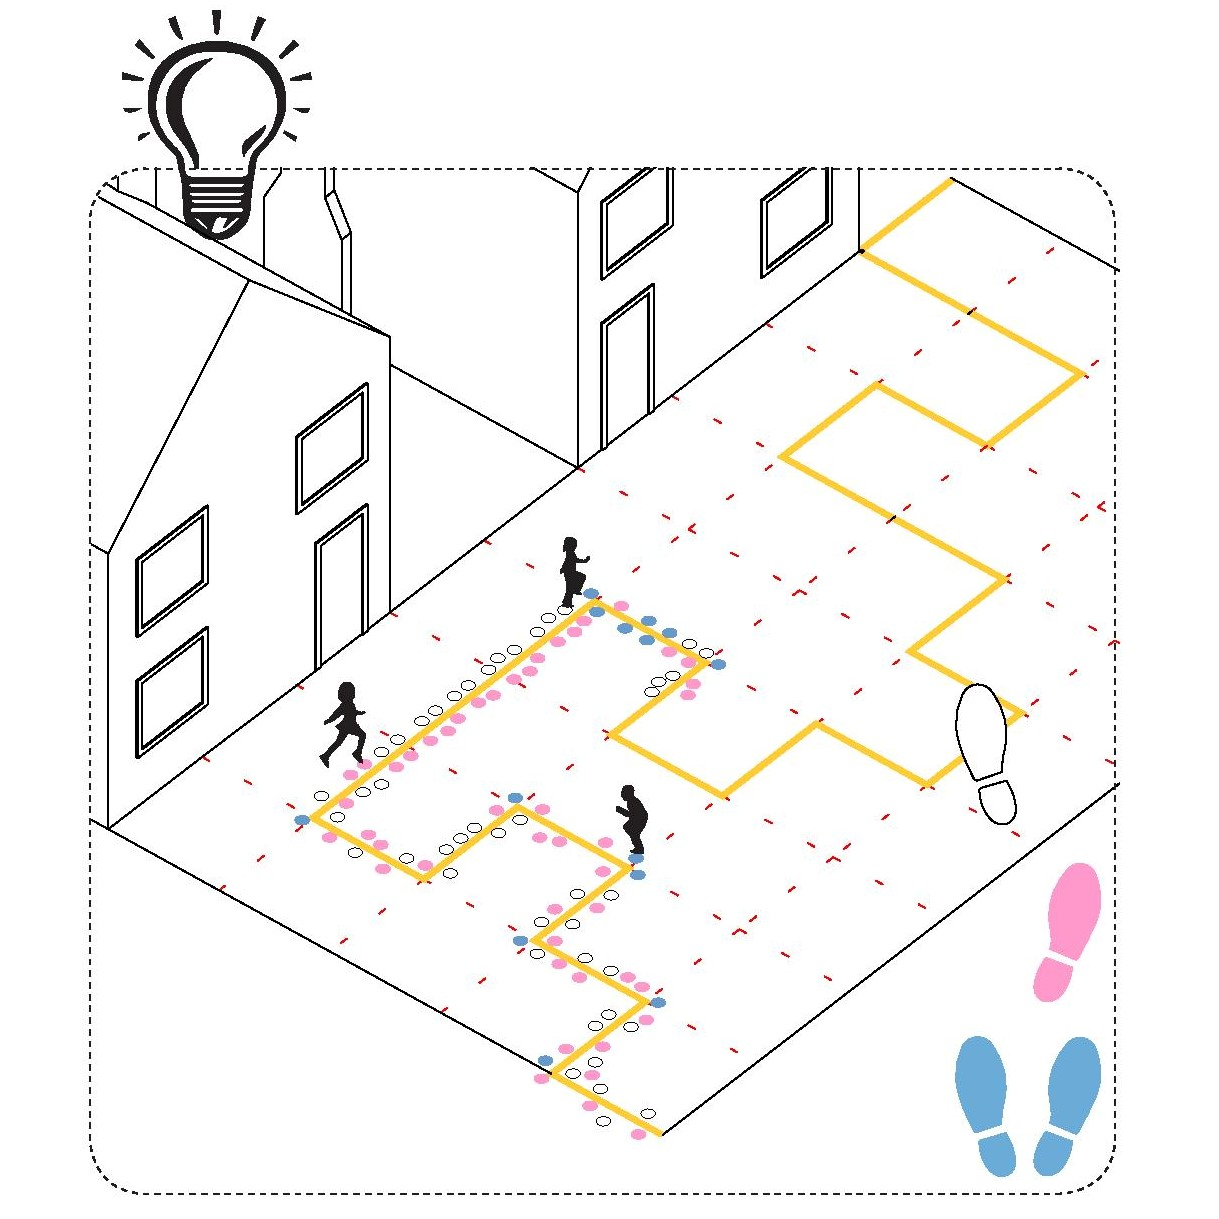 An isometric line drawing showing two houses with a path outside. A large square grid as been marked out on the path and a meandering geometric route has been drawn along the path in yellow. Either side of the yellow line are pink, blue and white circles. Icons at the side of the diagram indicate that white dots are for your left foot, pink dots are for your right foot and blue dots are for both/either feet.